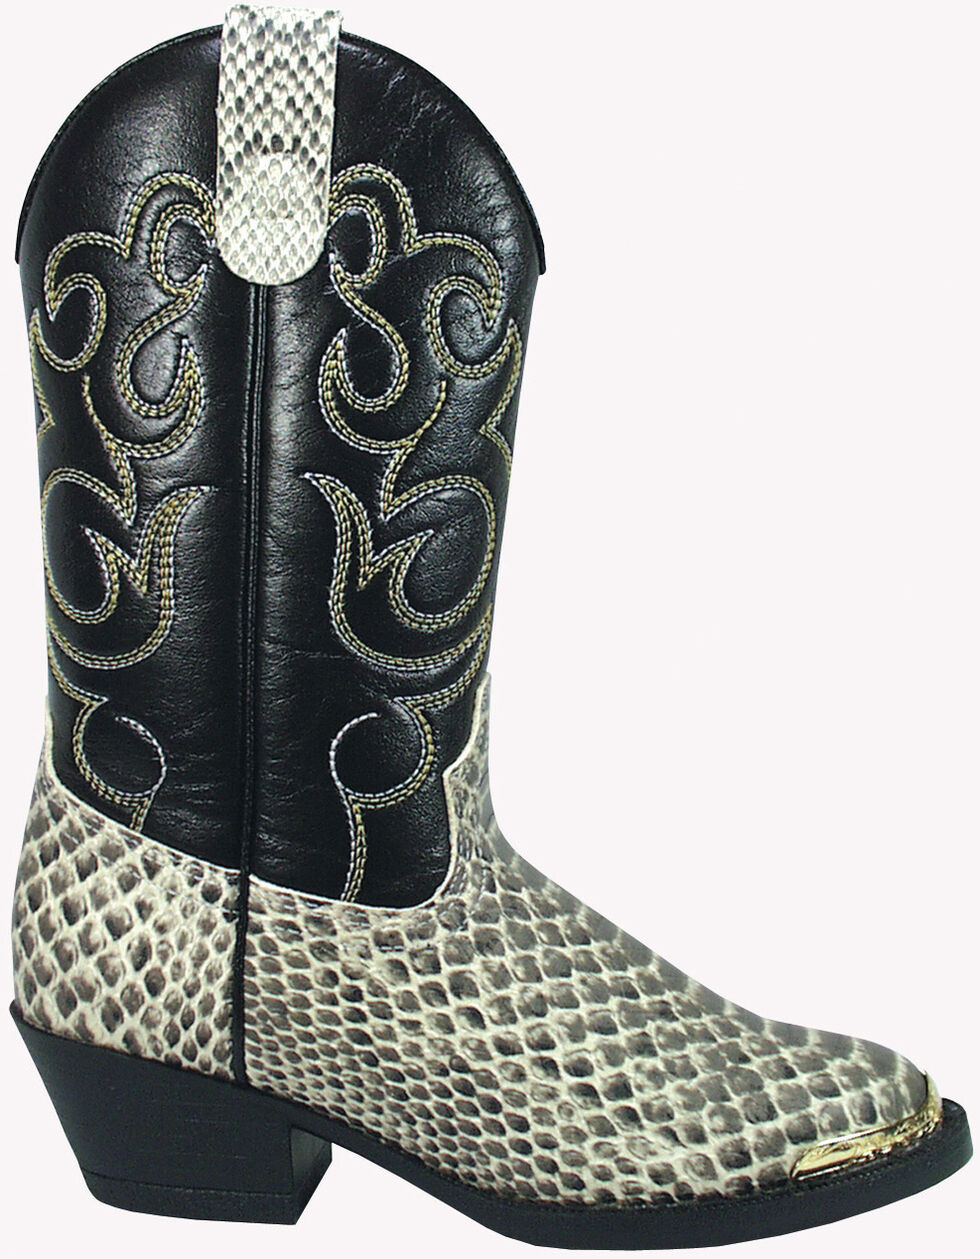 Smoky Mountain Youth Boys' Laramie Python Print Western Boots - Square Toe, Snake Print, hi-res